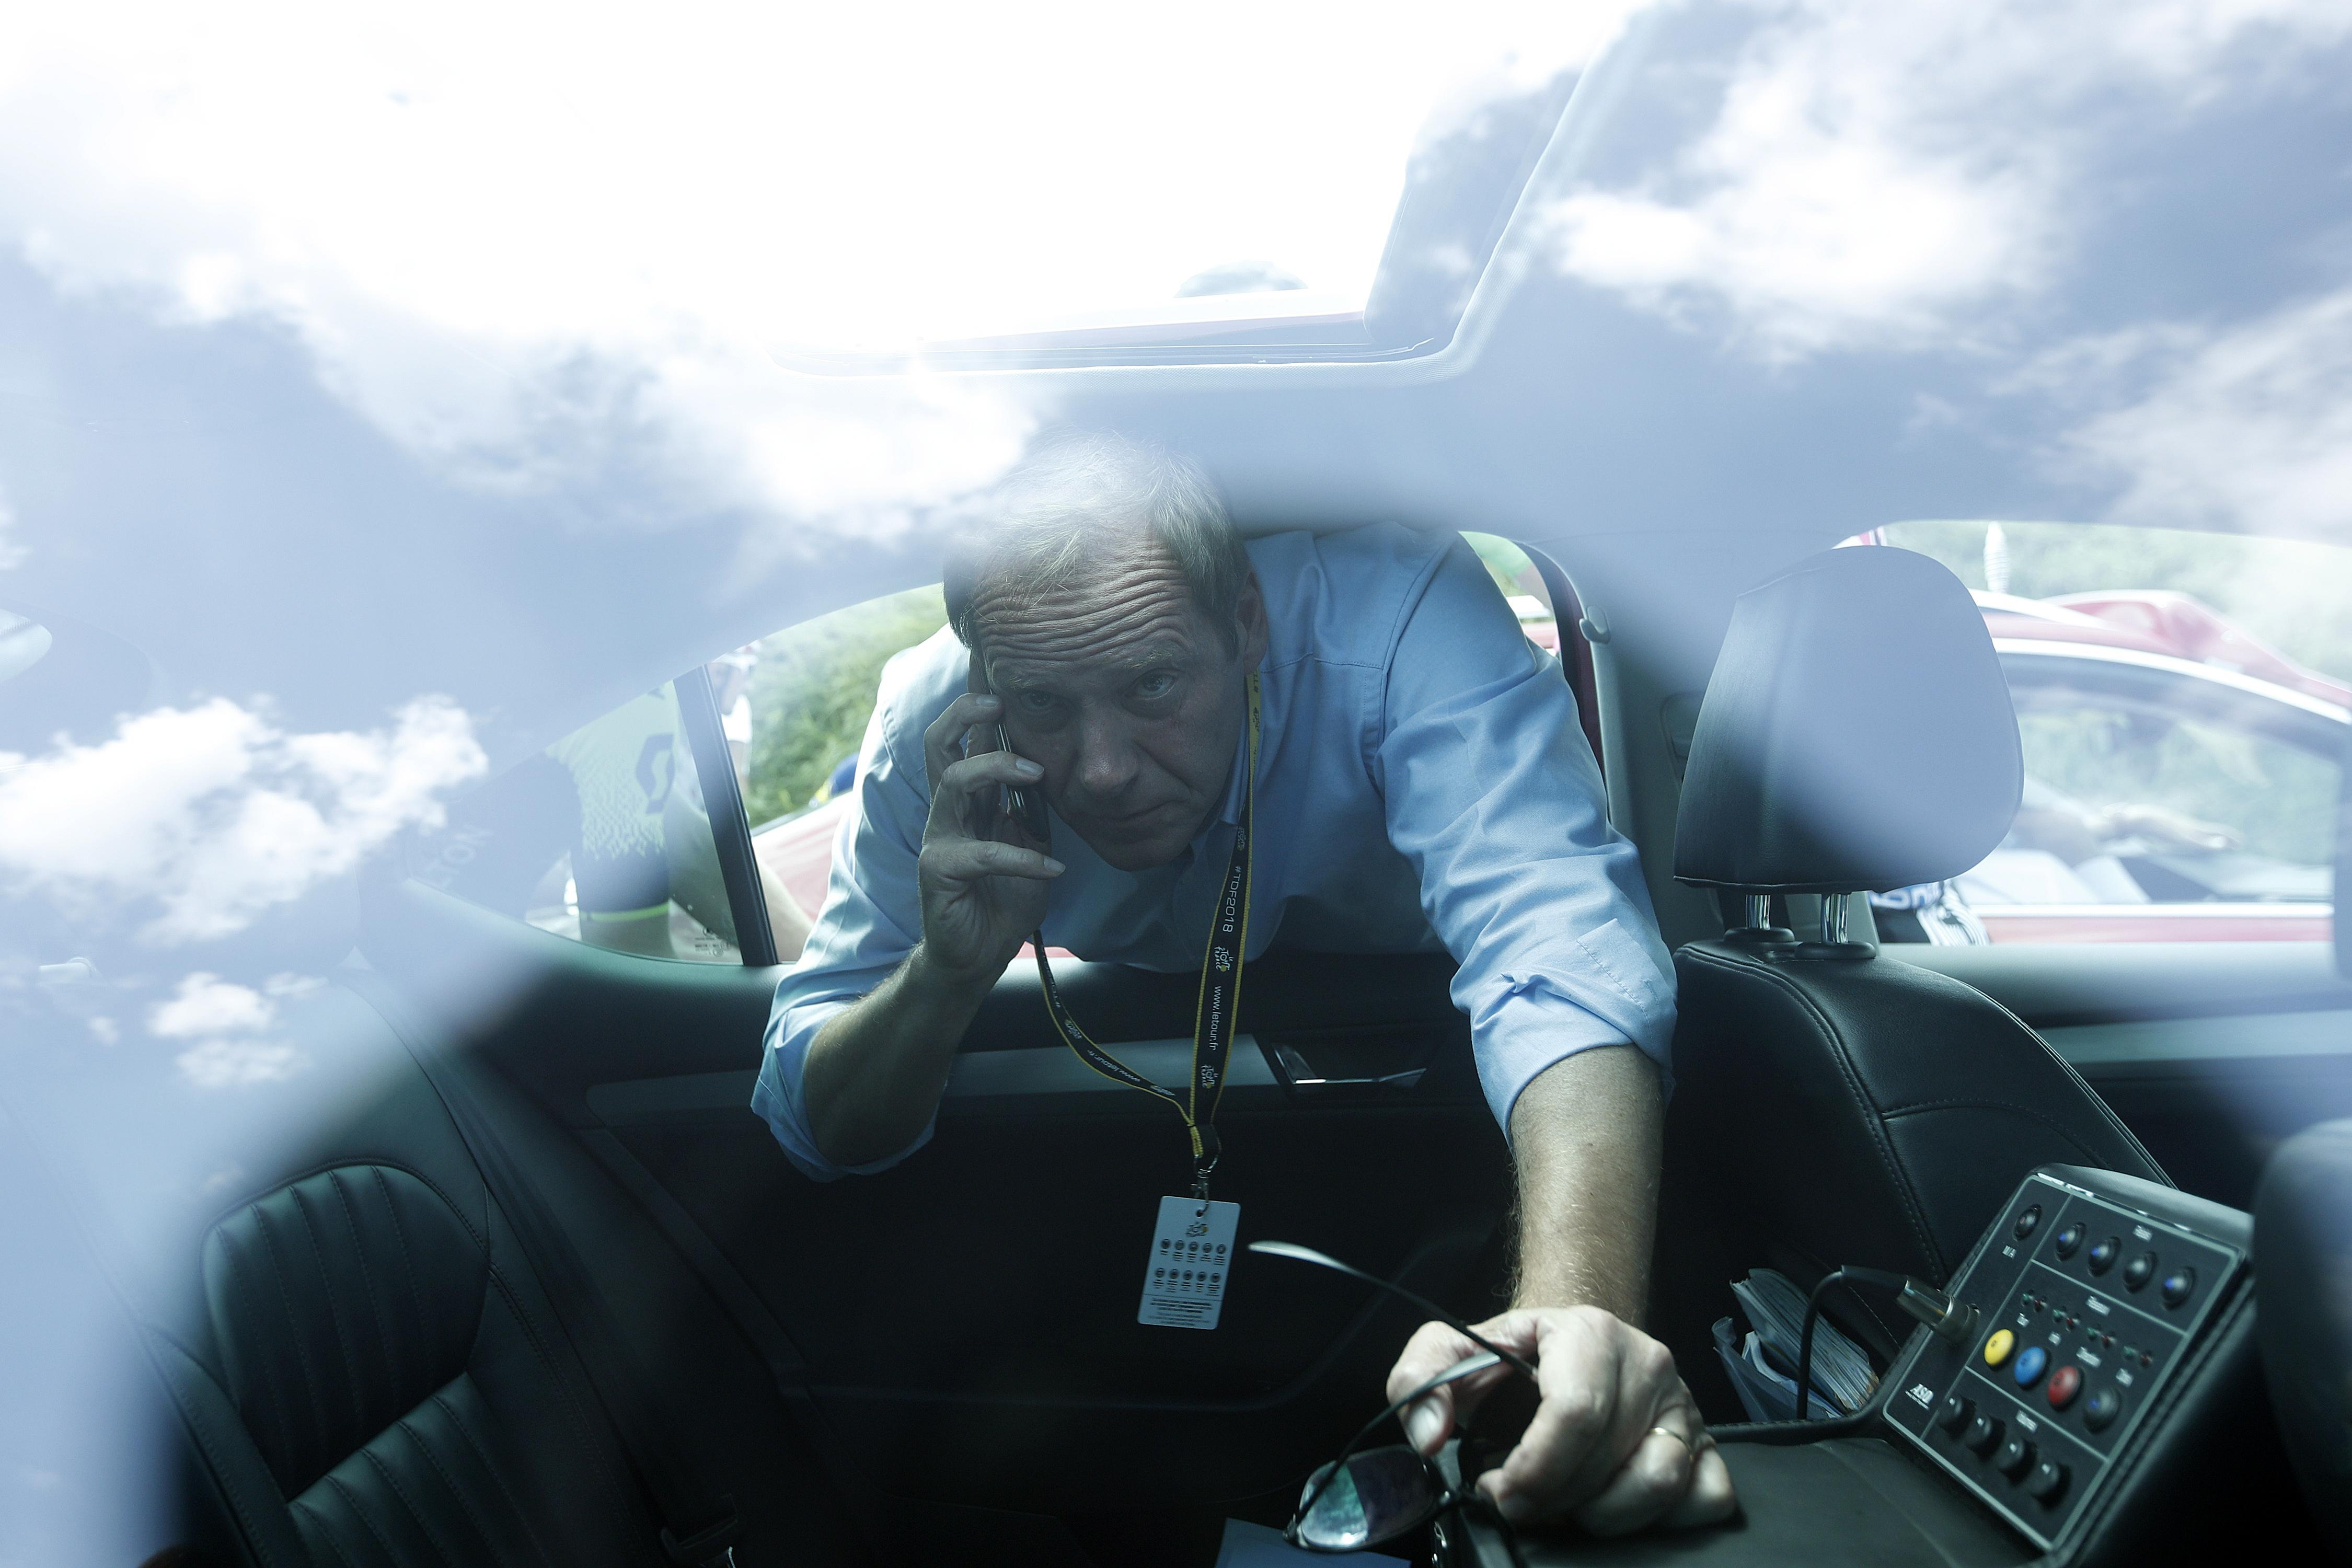 Race director Christian Prudhomme gets on the phone to local law enforcement over the delay